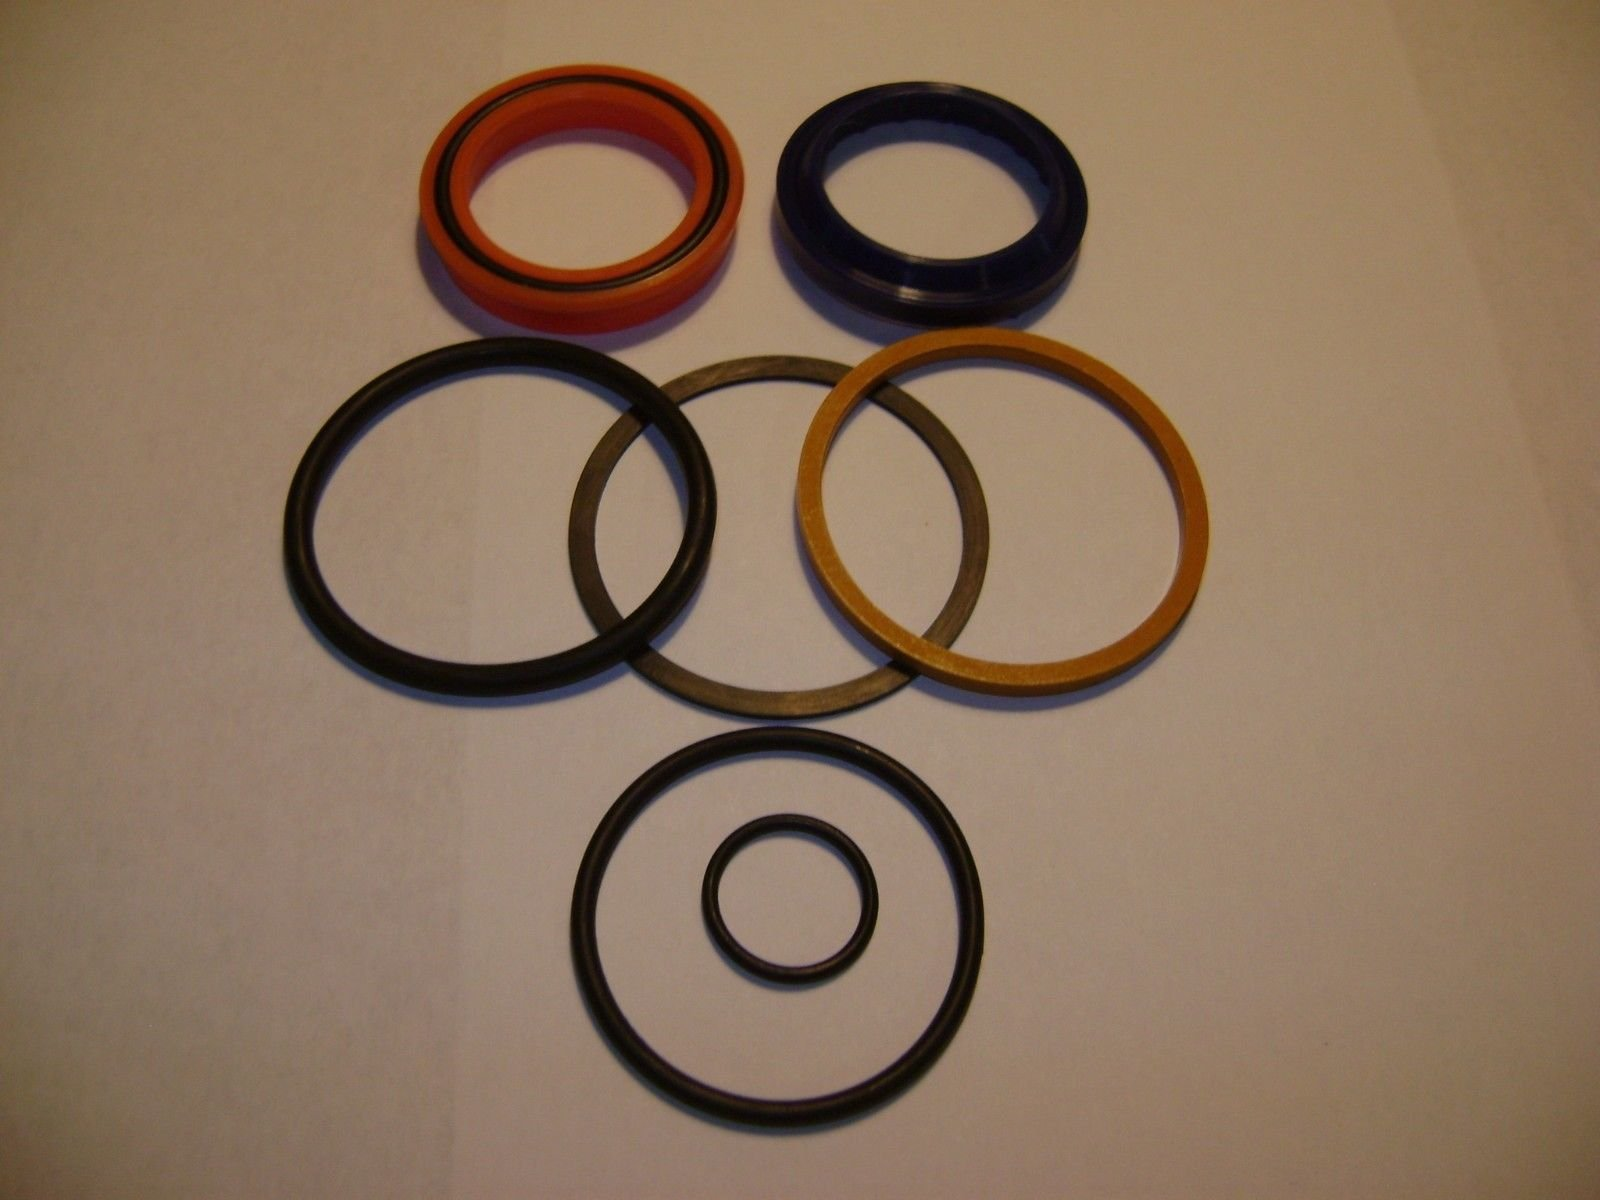 NMD BRAND 6504959 7137769 LOADER LIFT HYDRAULIC CYLINDER SEAL KIT FITS BOBCAT 300 444 500 520 530 533 540 543 610 611 620 630 631 632 640 642 643 700 720 721 722 730 731 732 740 741 742 743 800 OS175